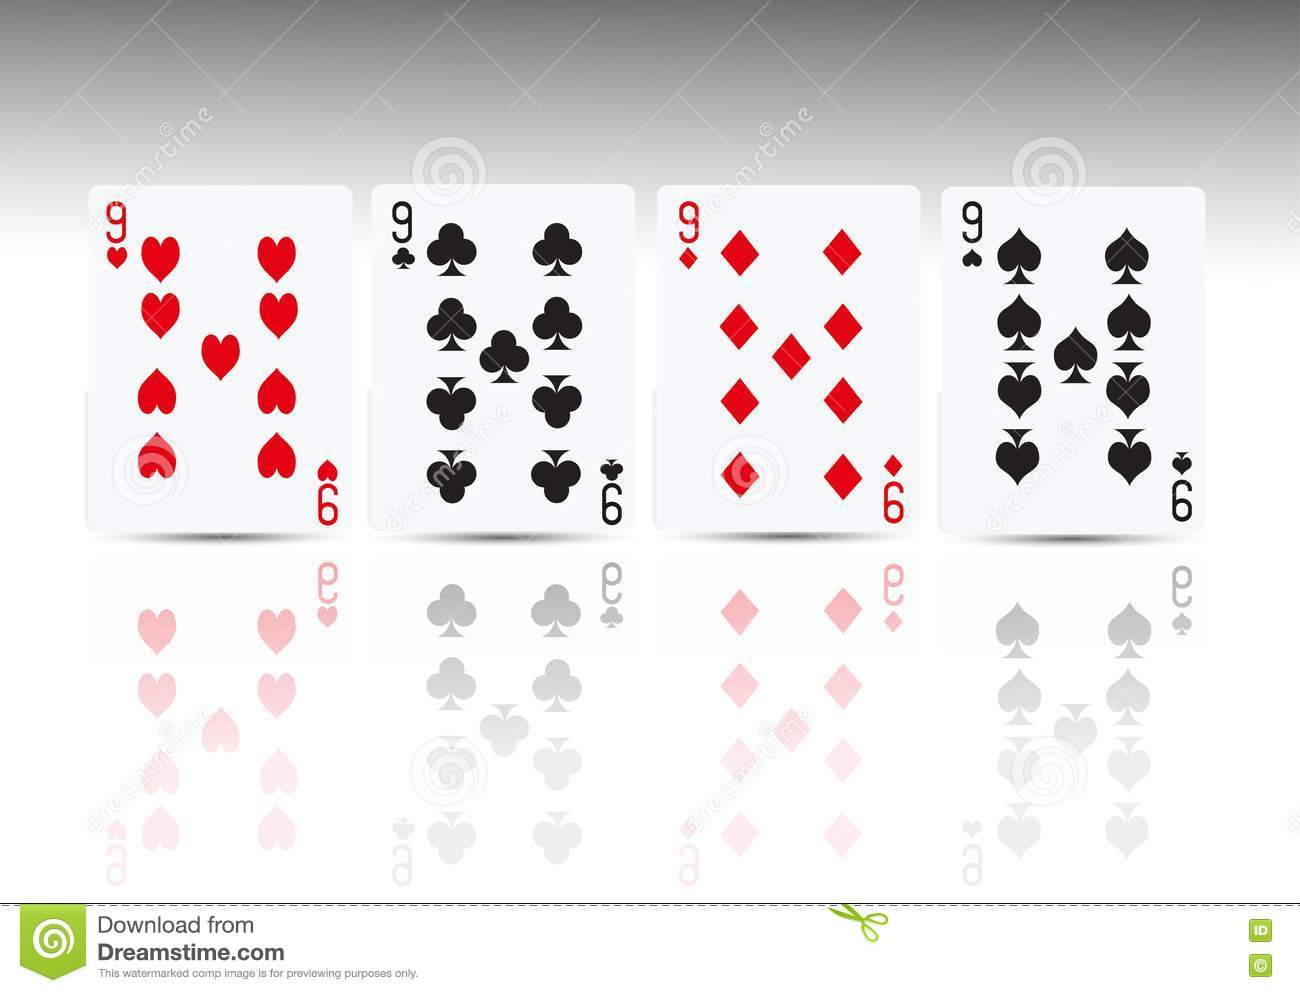 play free 4 card poker games